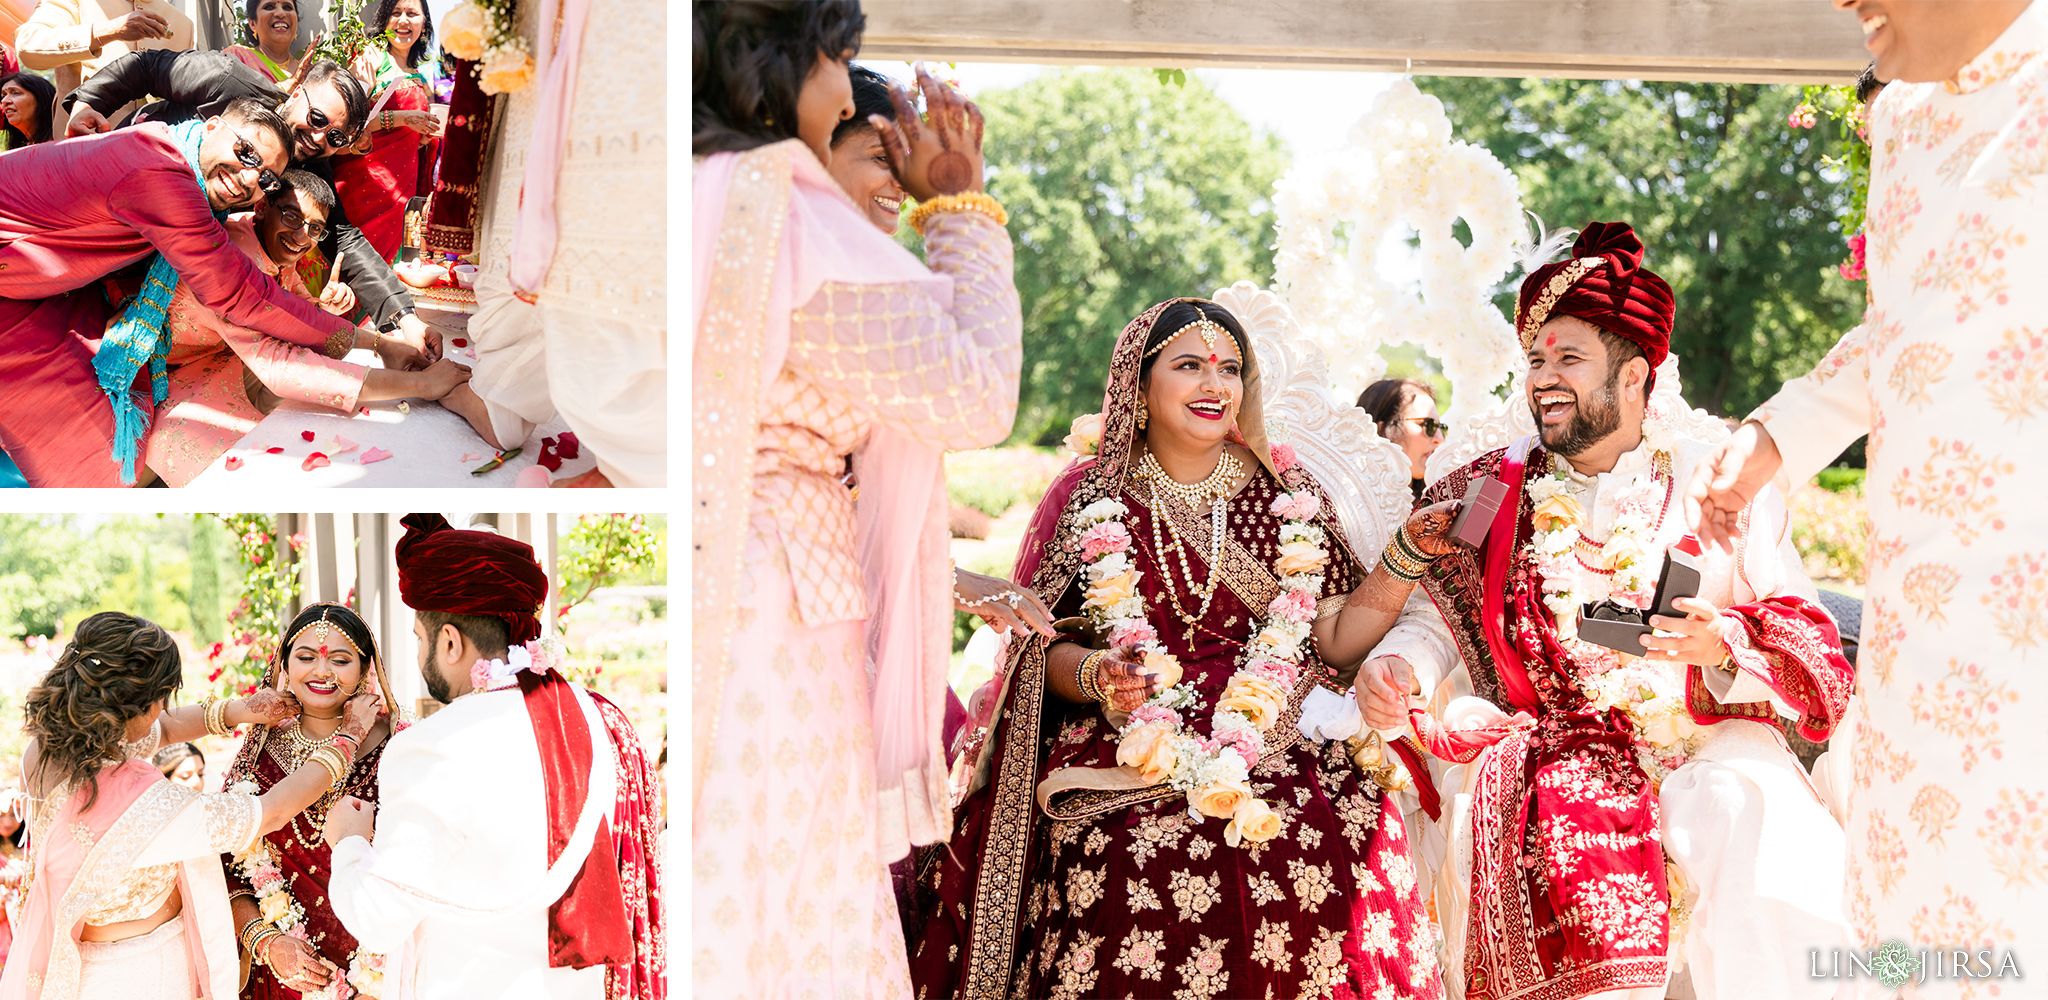 25 Delta Hotels Chesapeake Norfolk Virginia Indian Wedding Photography